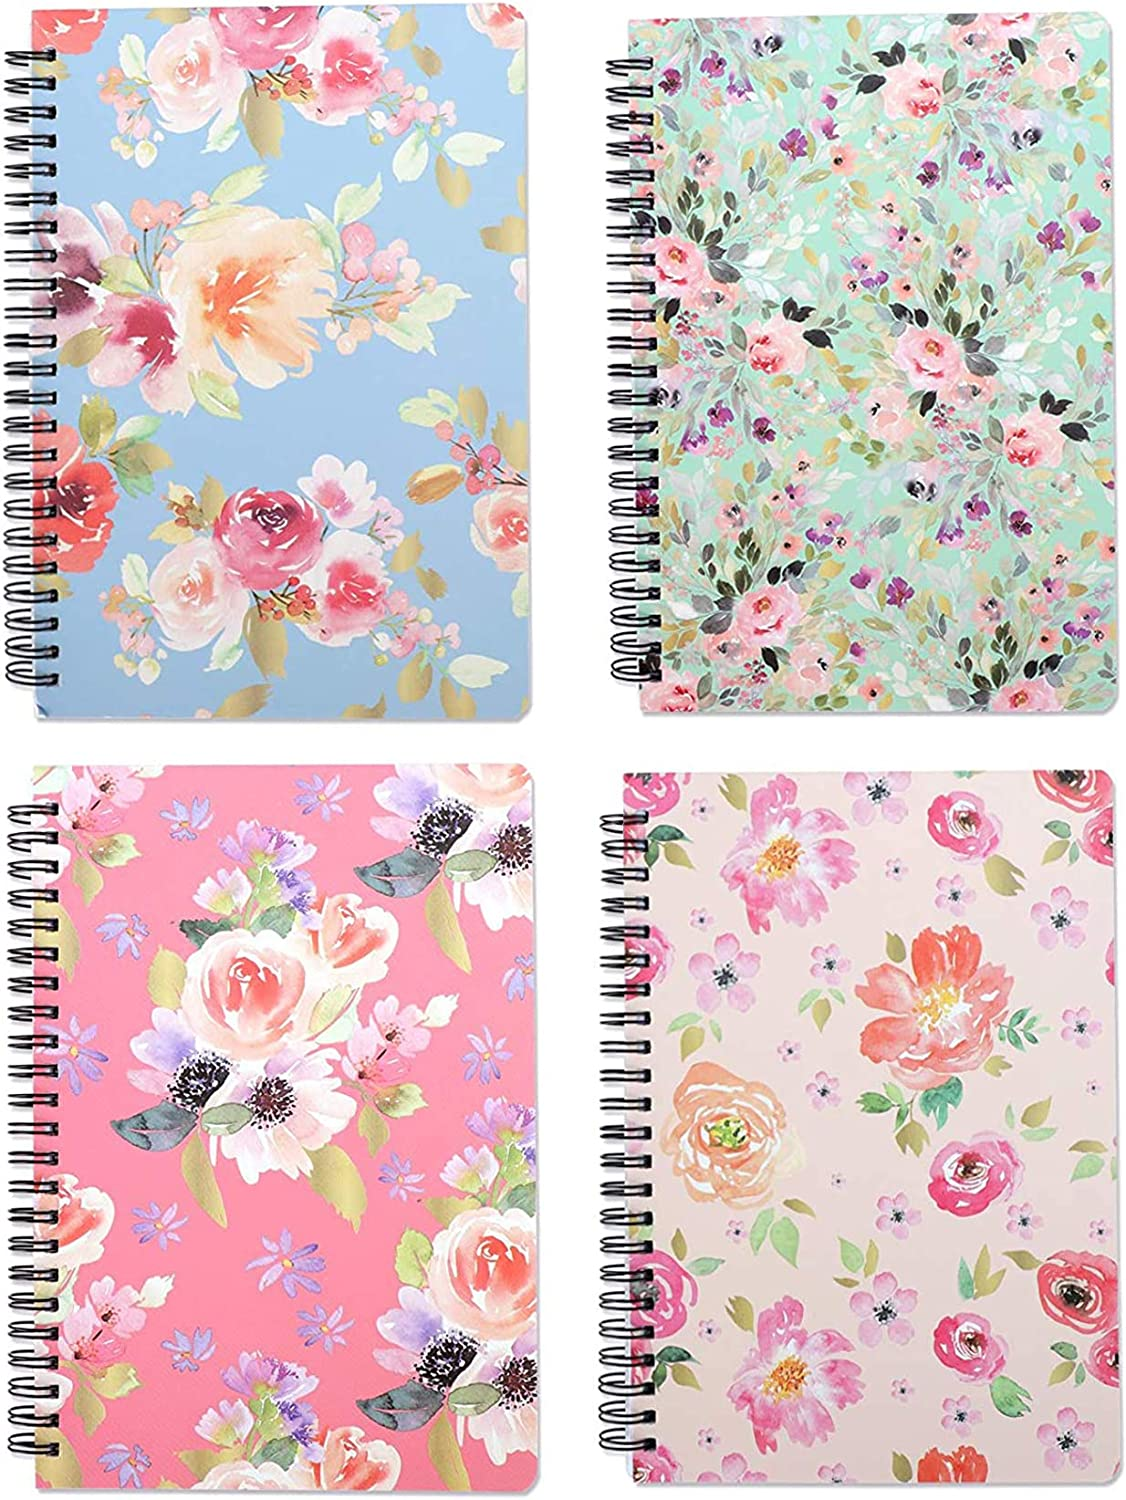 Yansanido 4 Pack 160 Pages Spiral Notebook Journal Hardcover 8.26 x 5.9 Inch (A5) College Ruled Lined Notebook White Paper for Students Office School Supplies(style 6- Flower 4 pack)